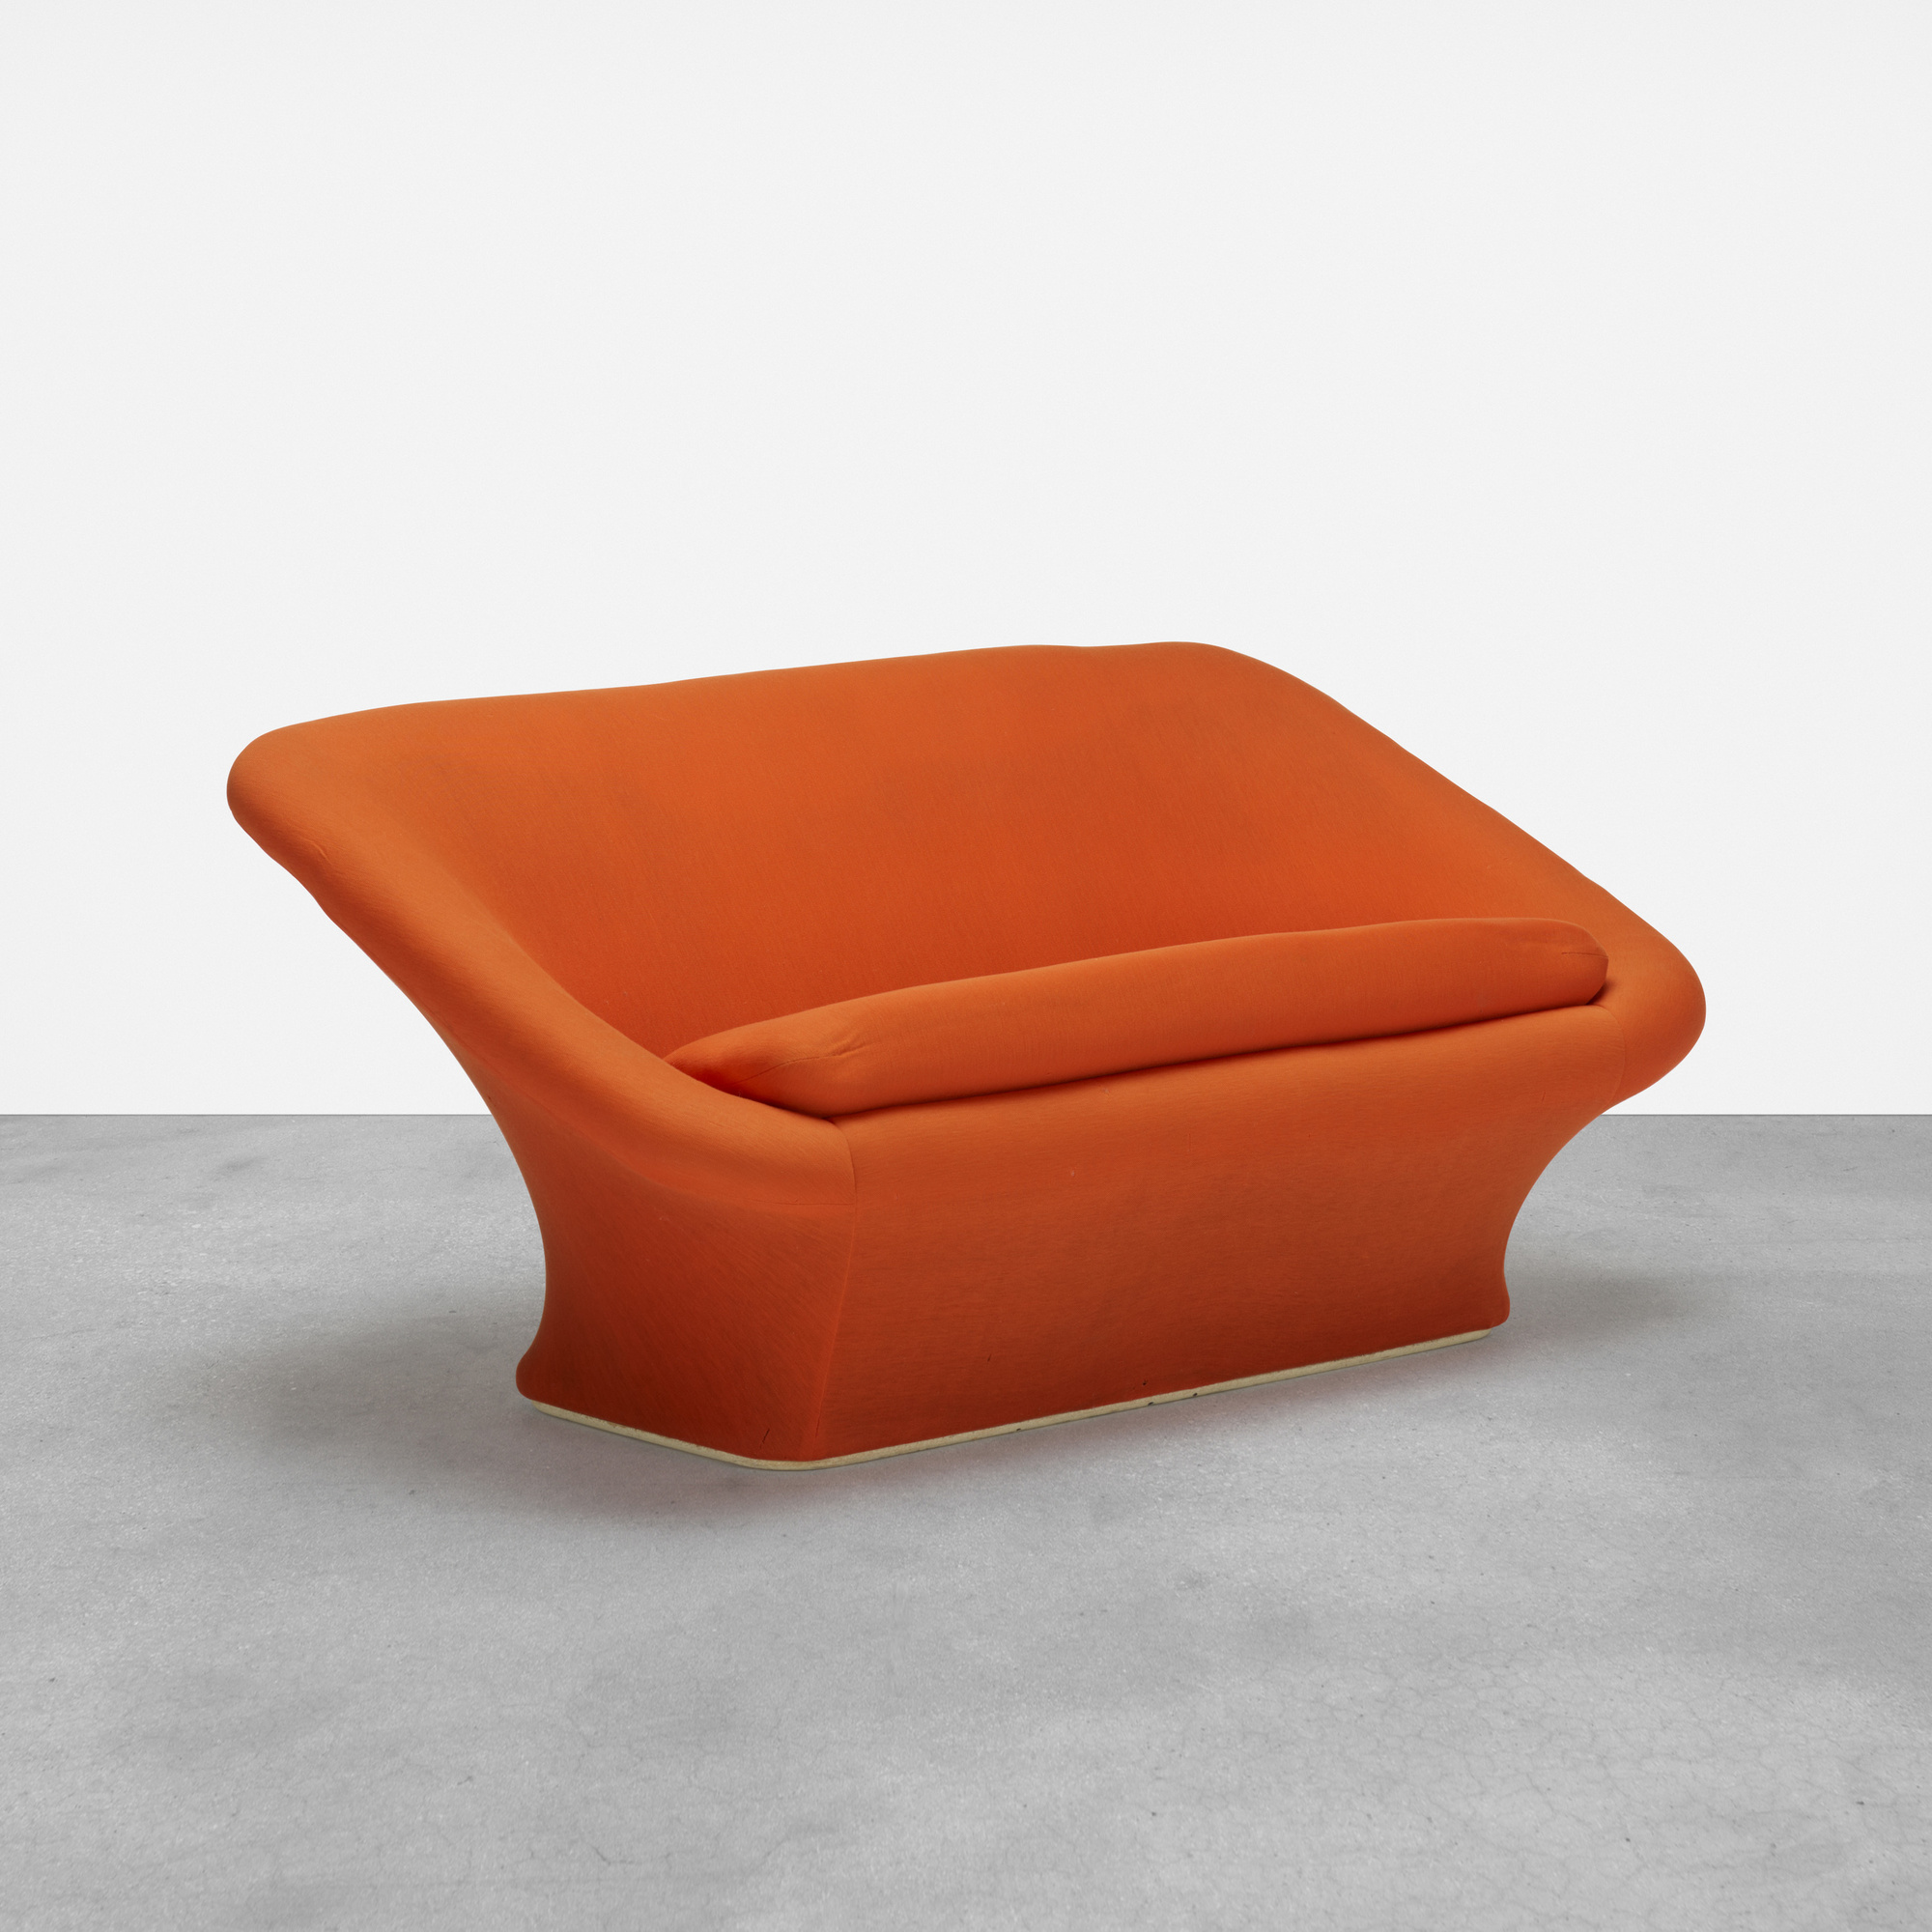 Pierre Paulin Sofa 363 Pierre Paulin Square Mushroom Sofa Model C565 Design